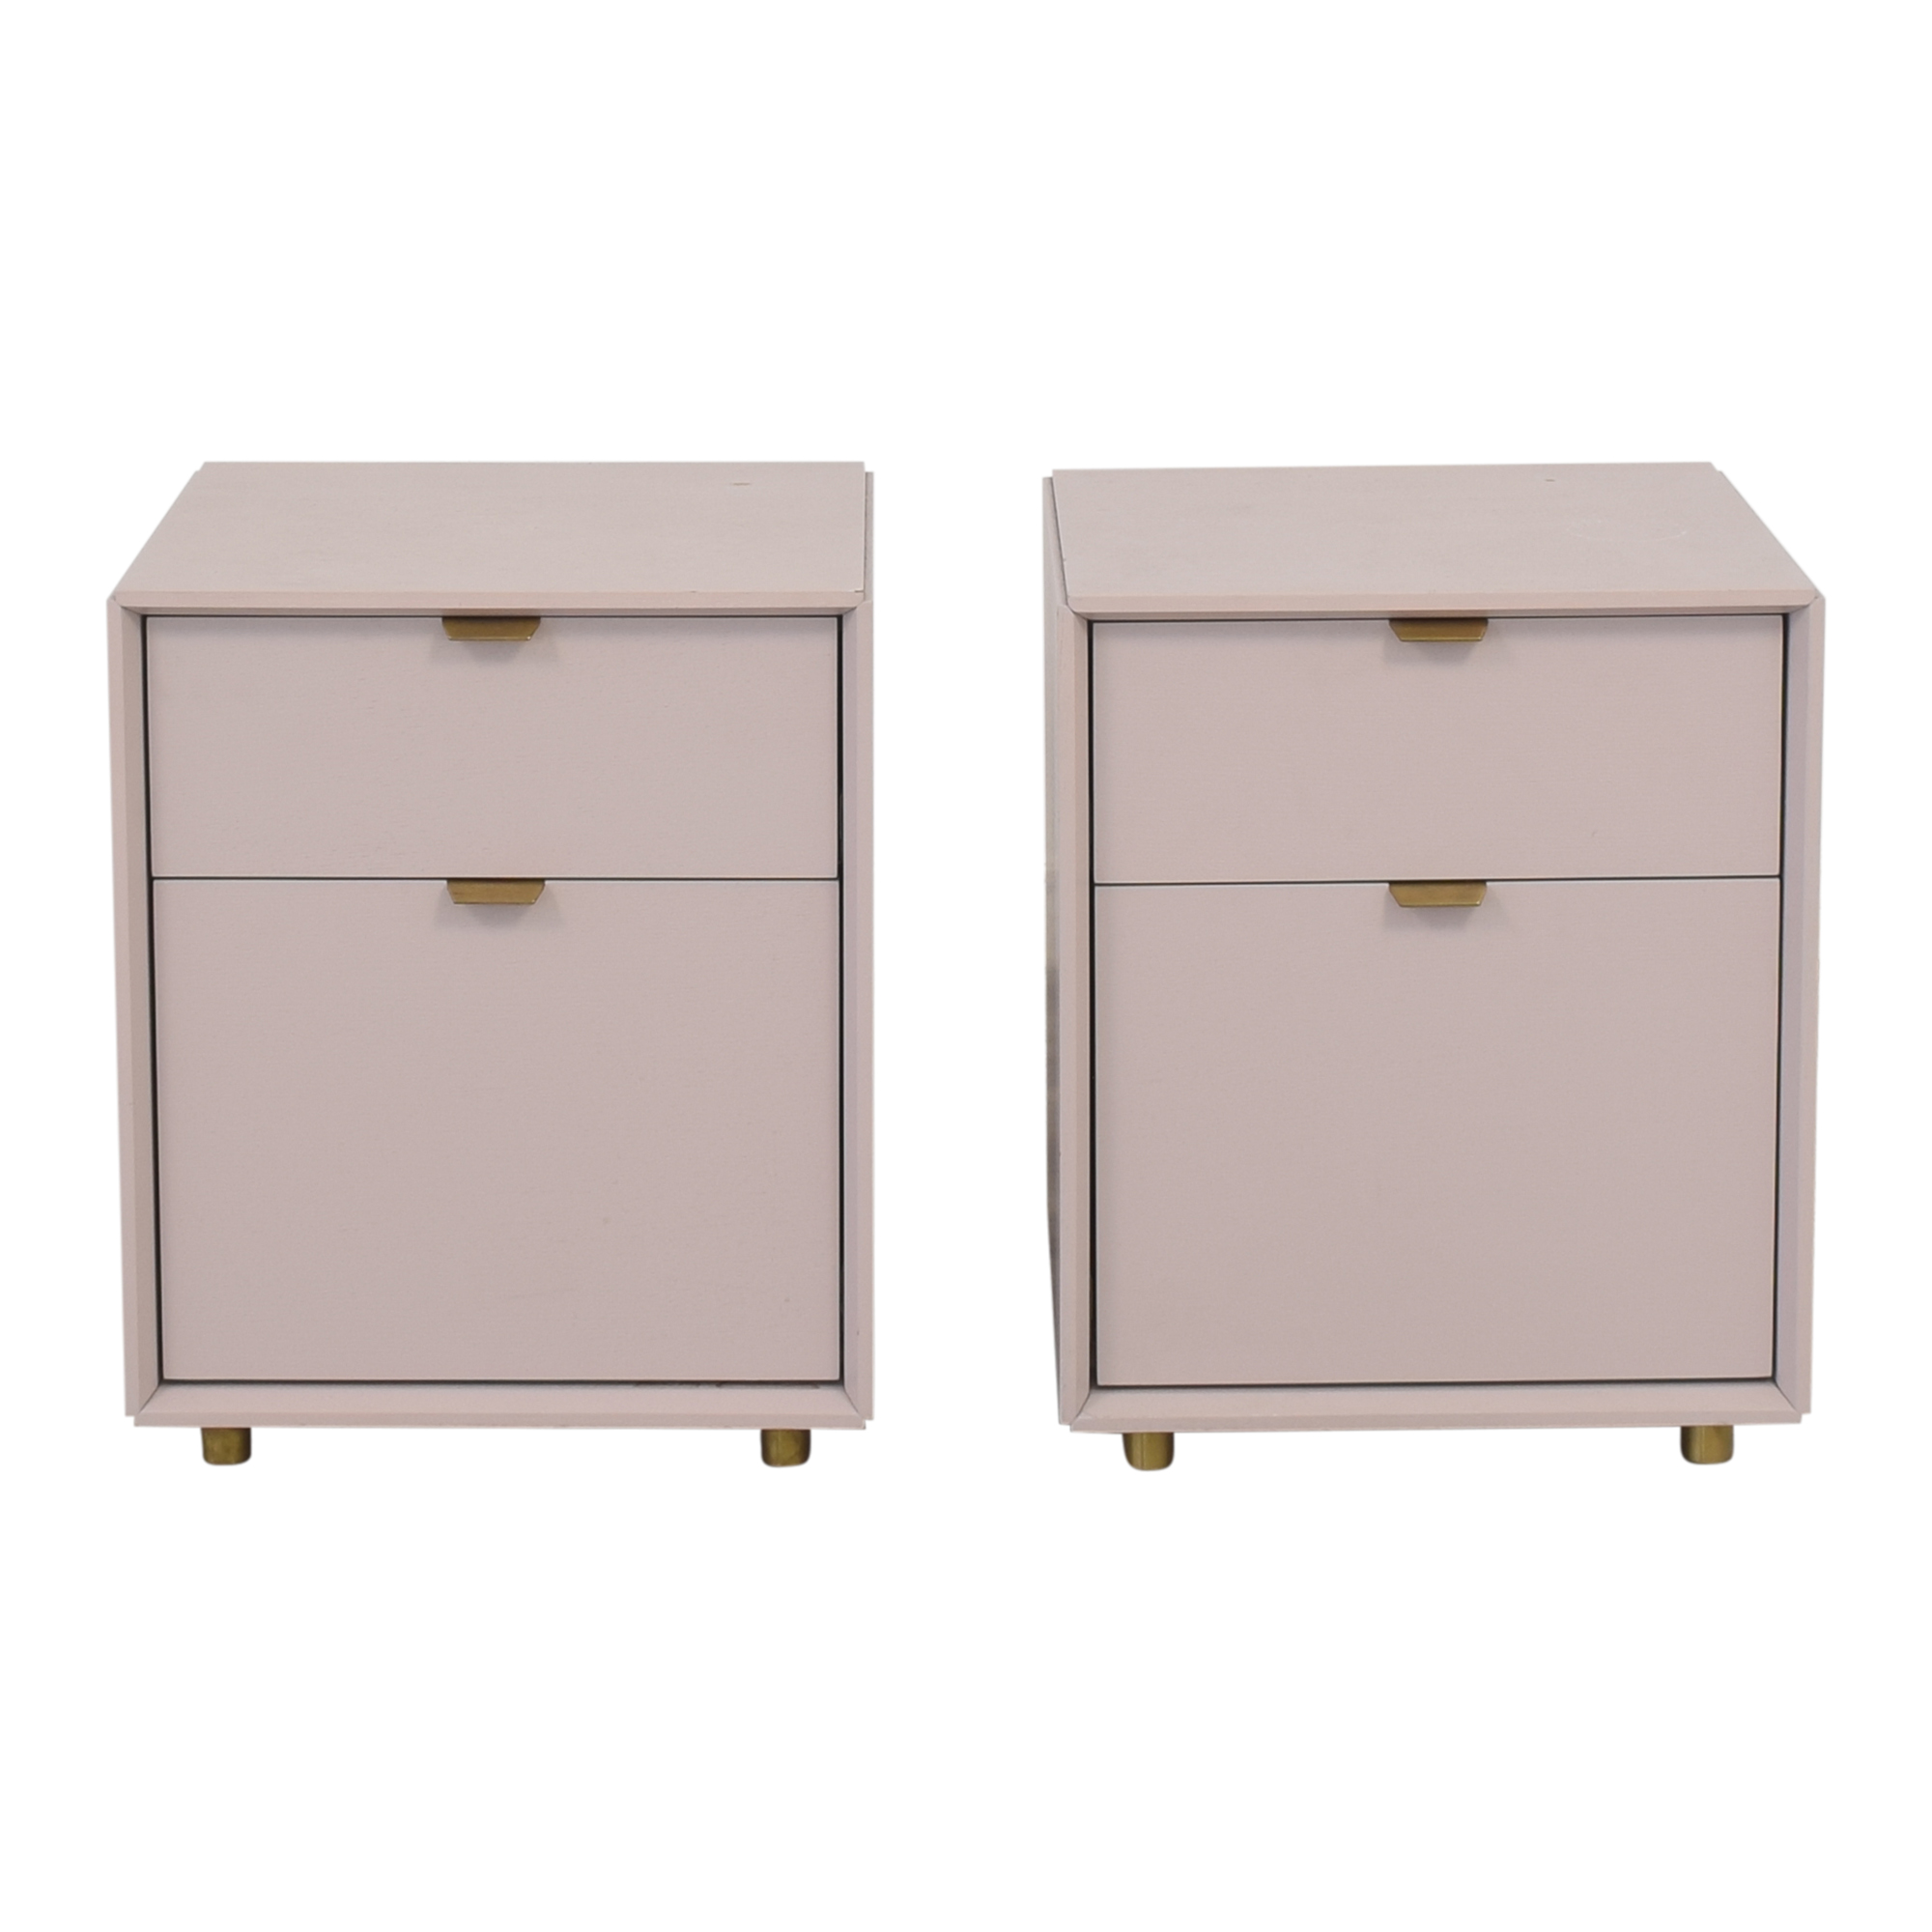 Blu Dot Blu Dot Dang File Pedestals for sale